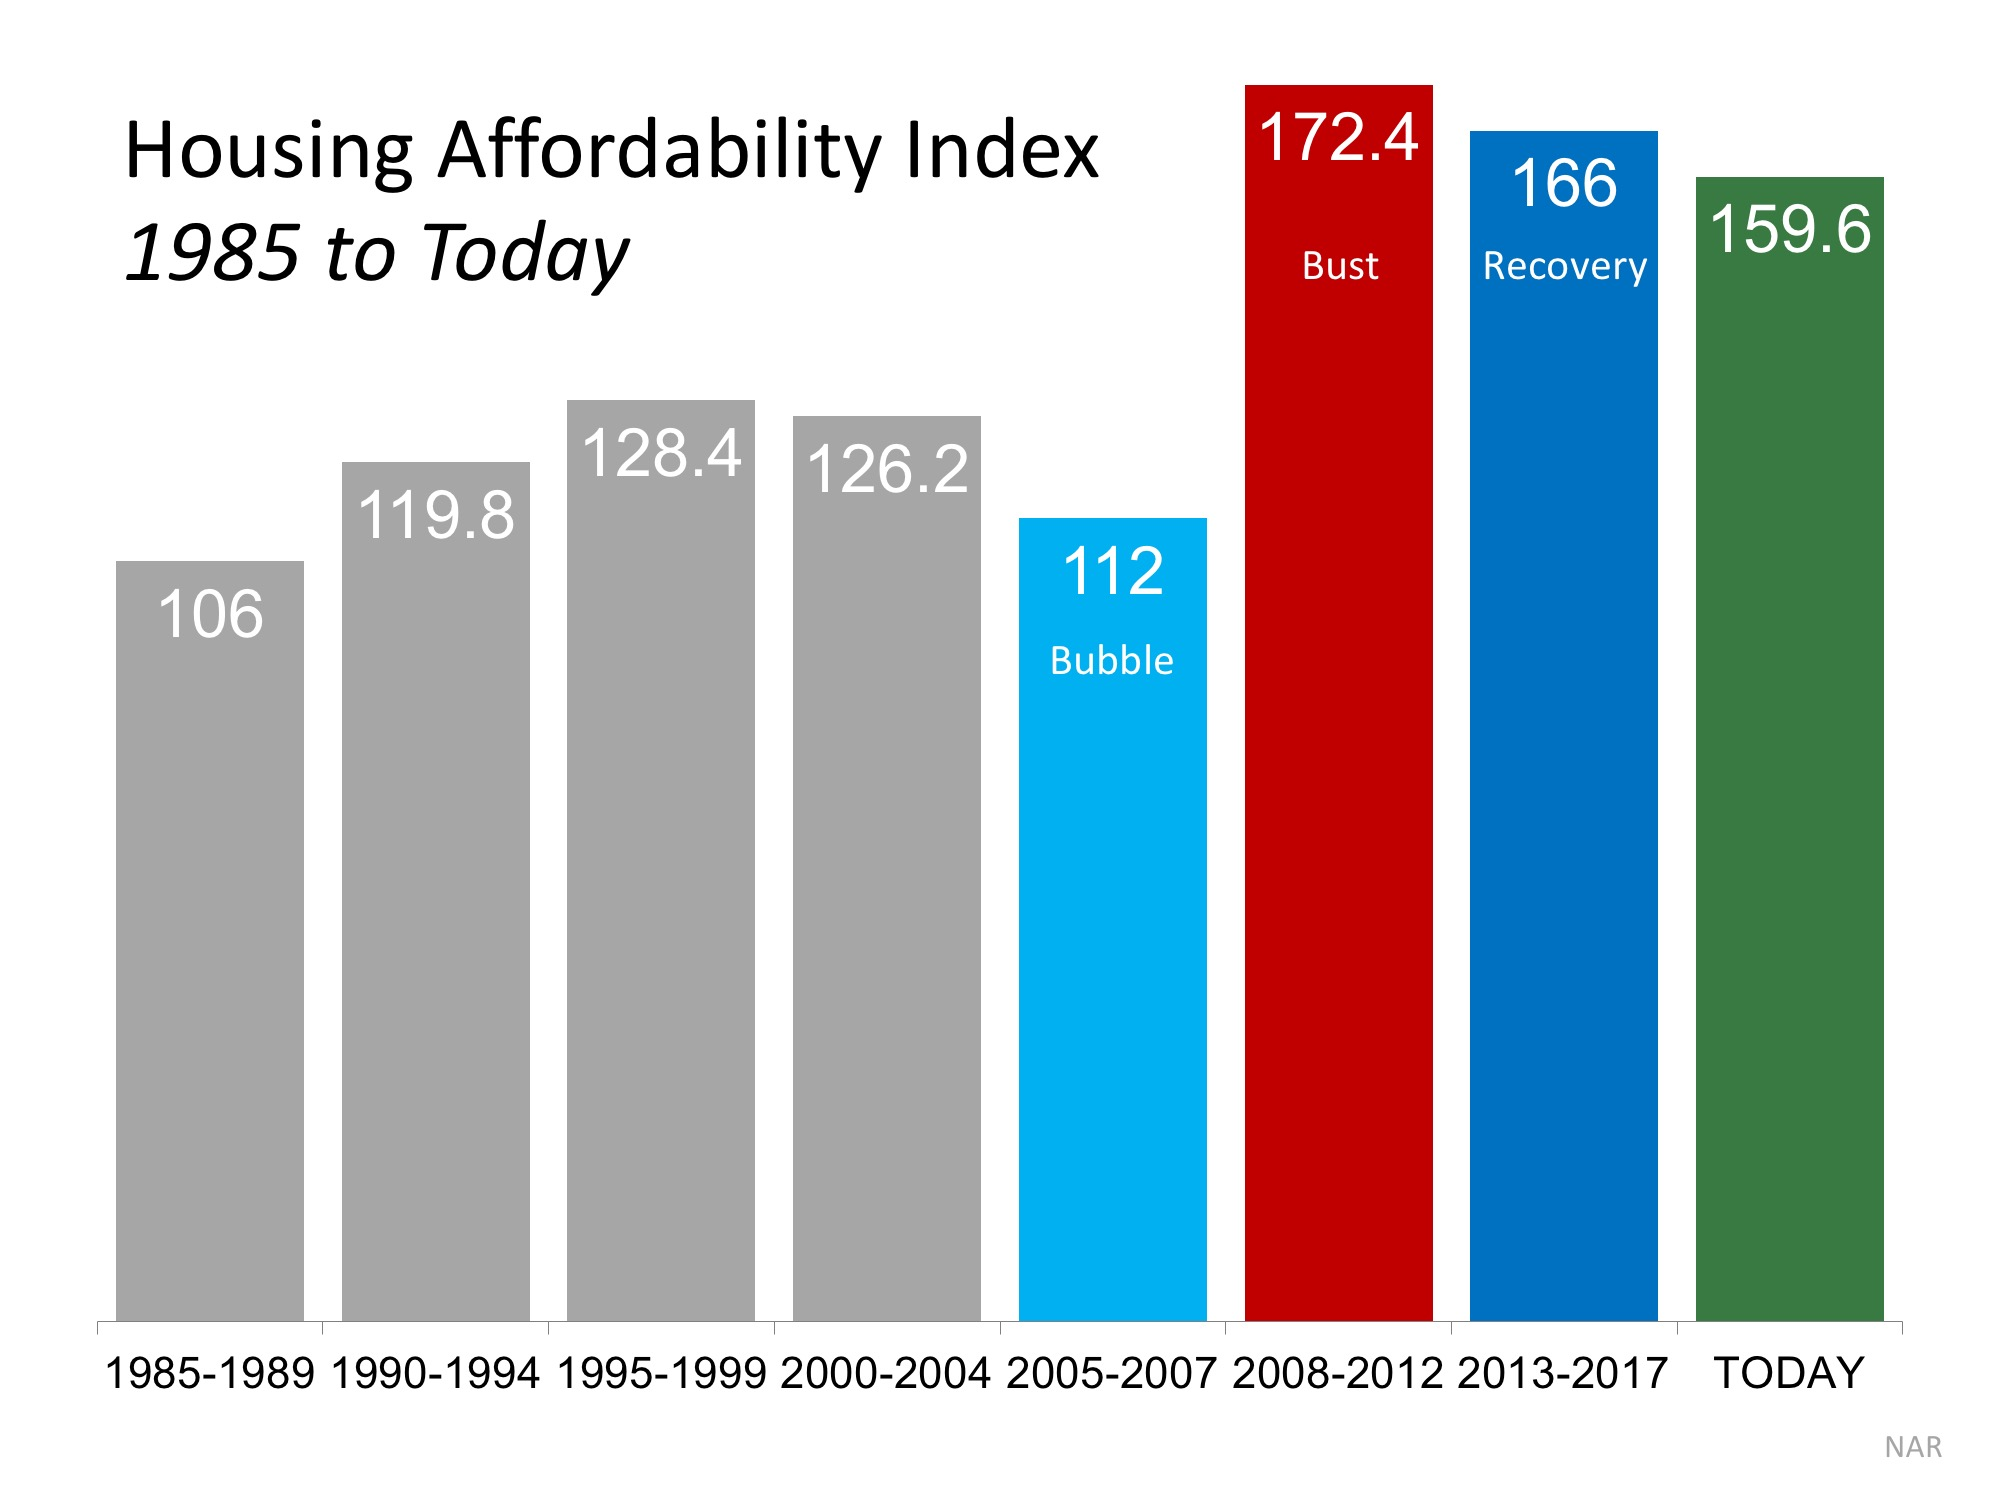 seattle metropolist national housing affordability index real estate